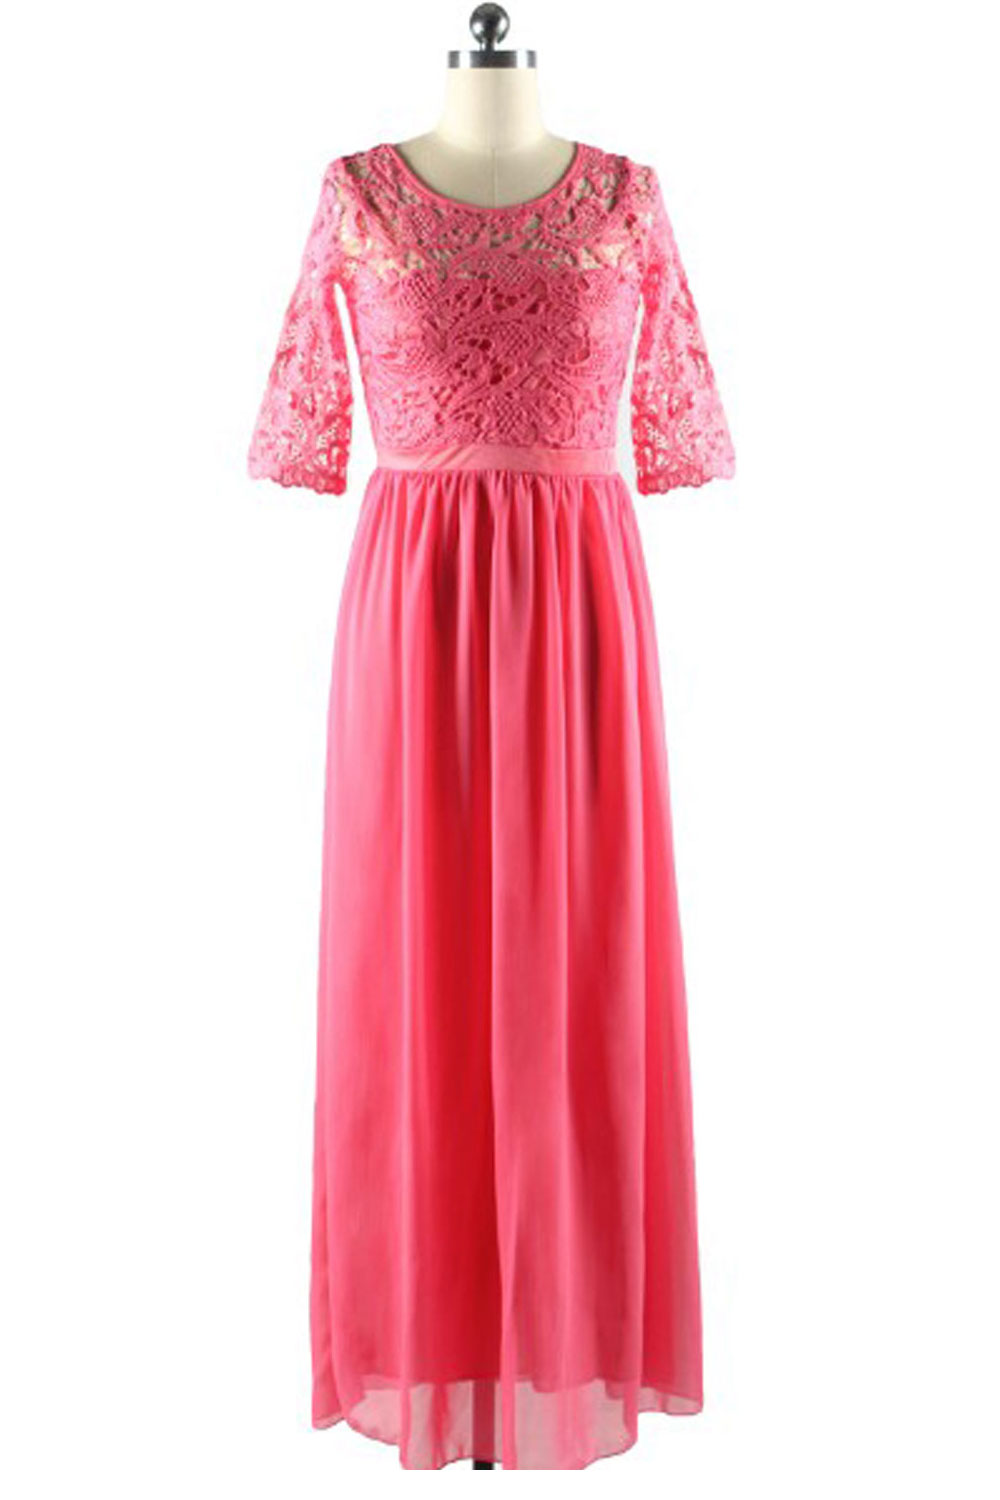 Amazing Haute Hippie Embellished Silk Chiffon Dress For Women | Aewom